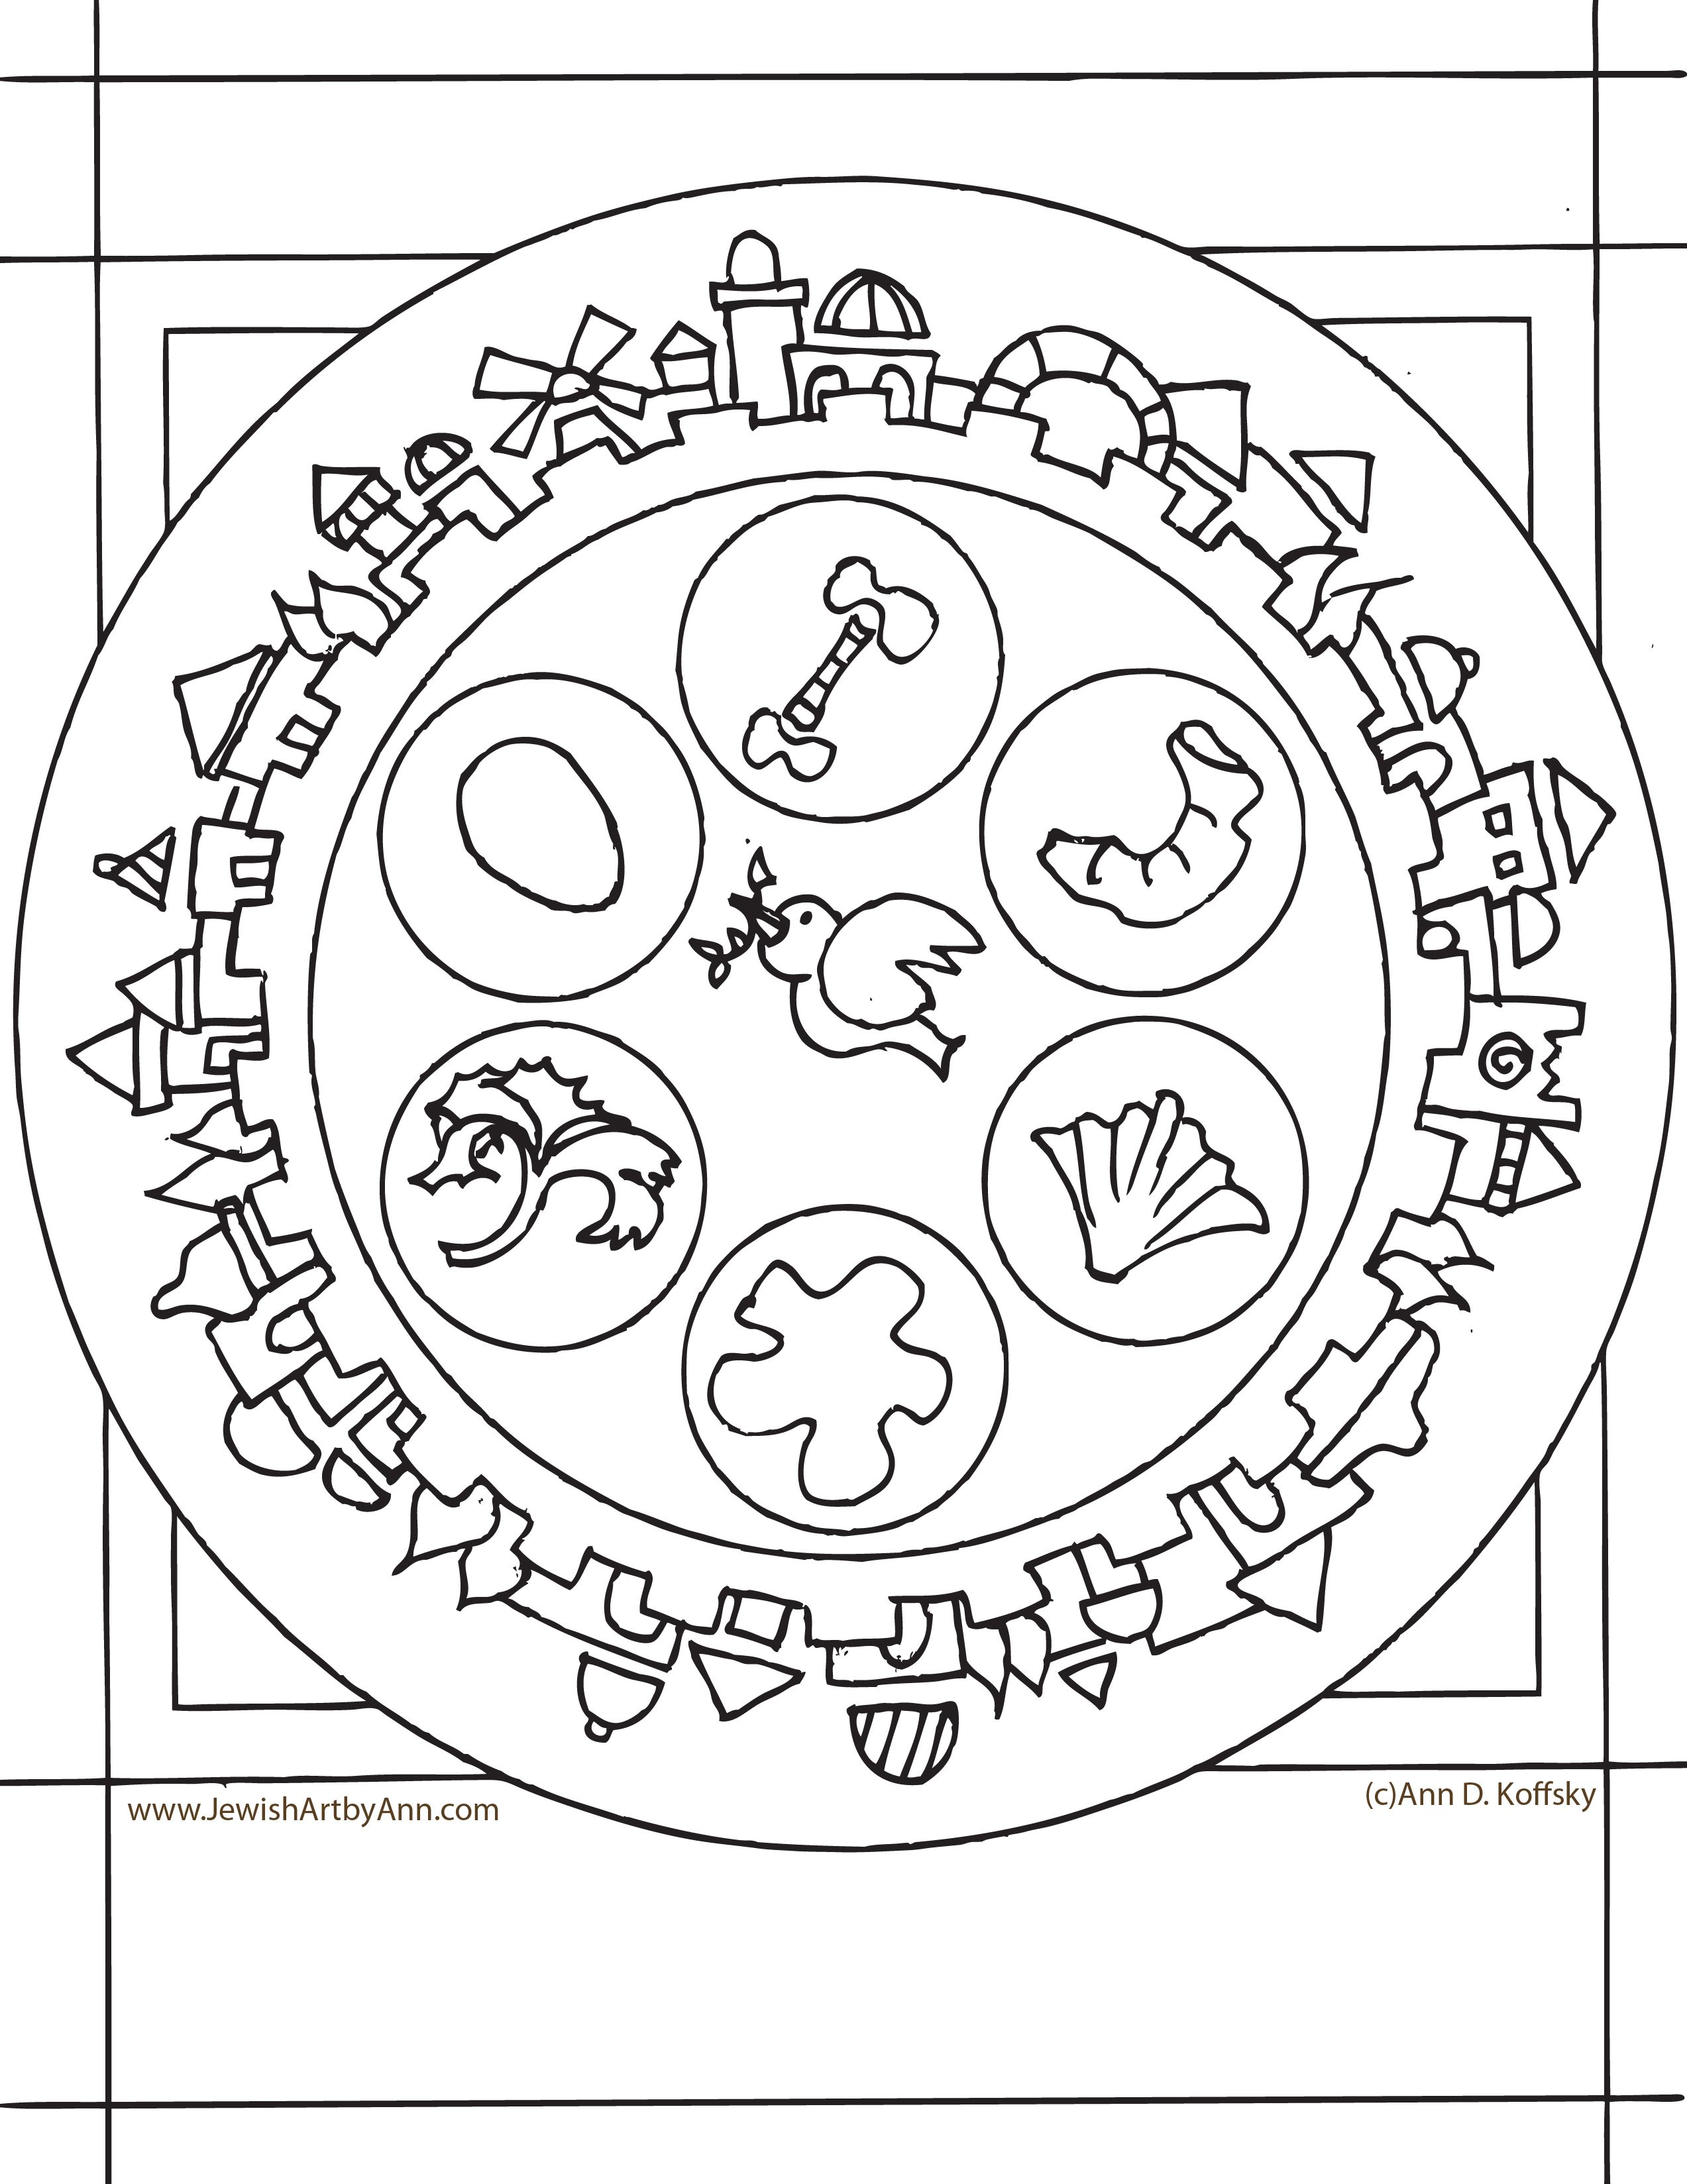 Ann Koffsky Passover Plate Coloring Page Coloring Pages Free